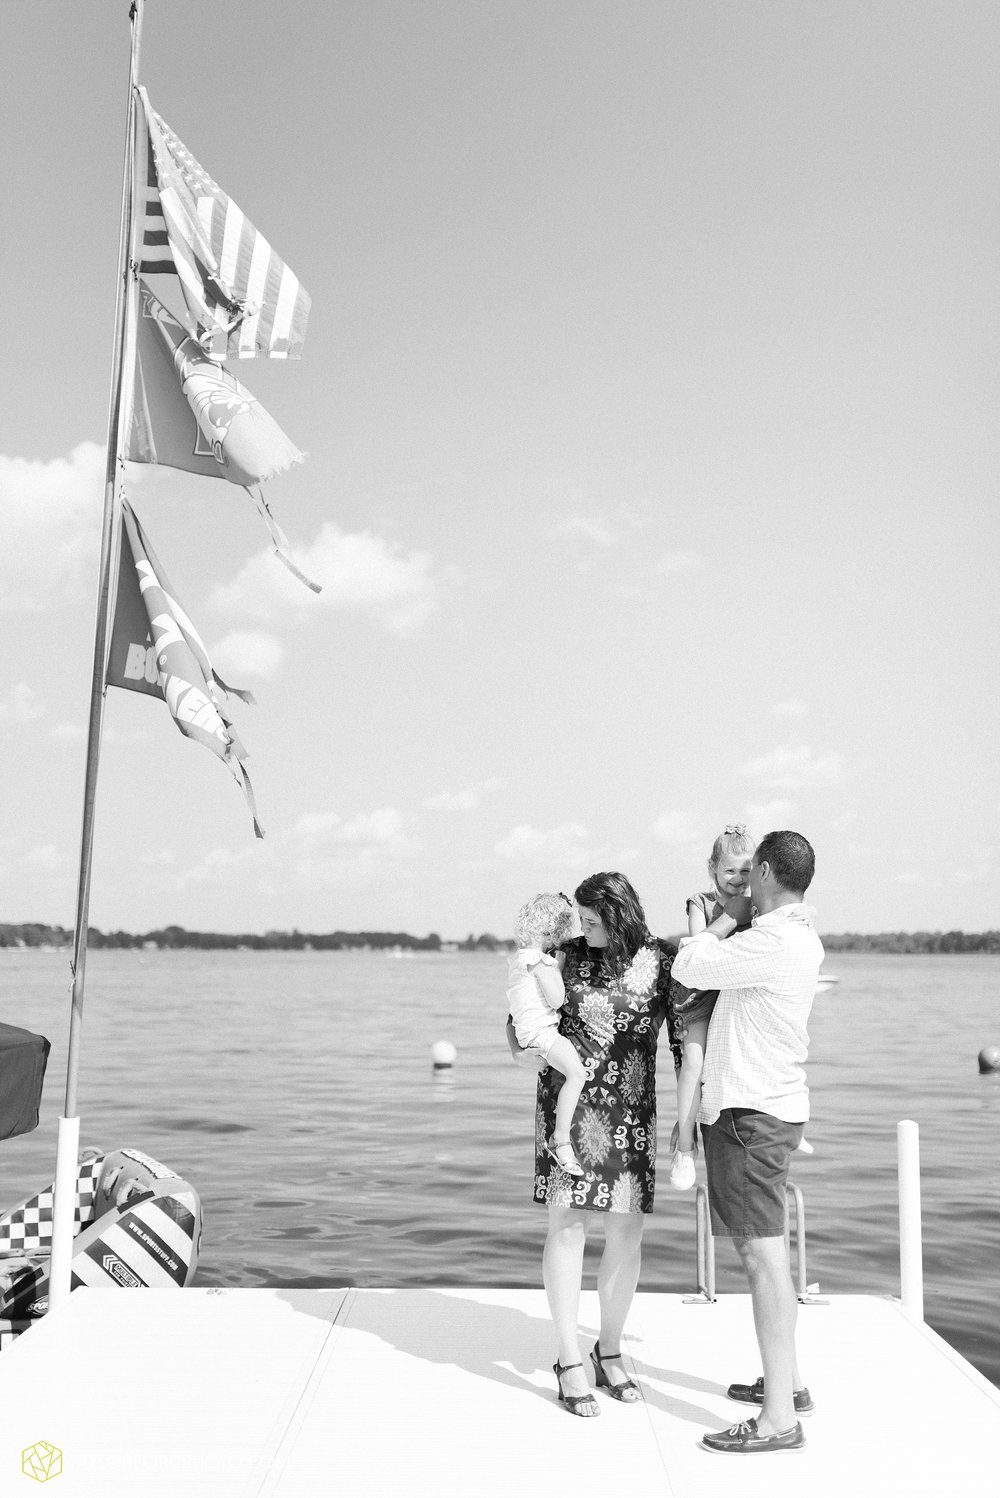 syracuse-indiana-lake-wawasee-family-lake-house-lakeside-park-lifestyle-photographer-taylor-ford-photographer_9433.jpg